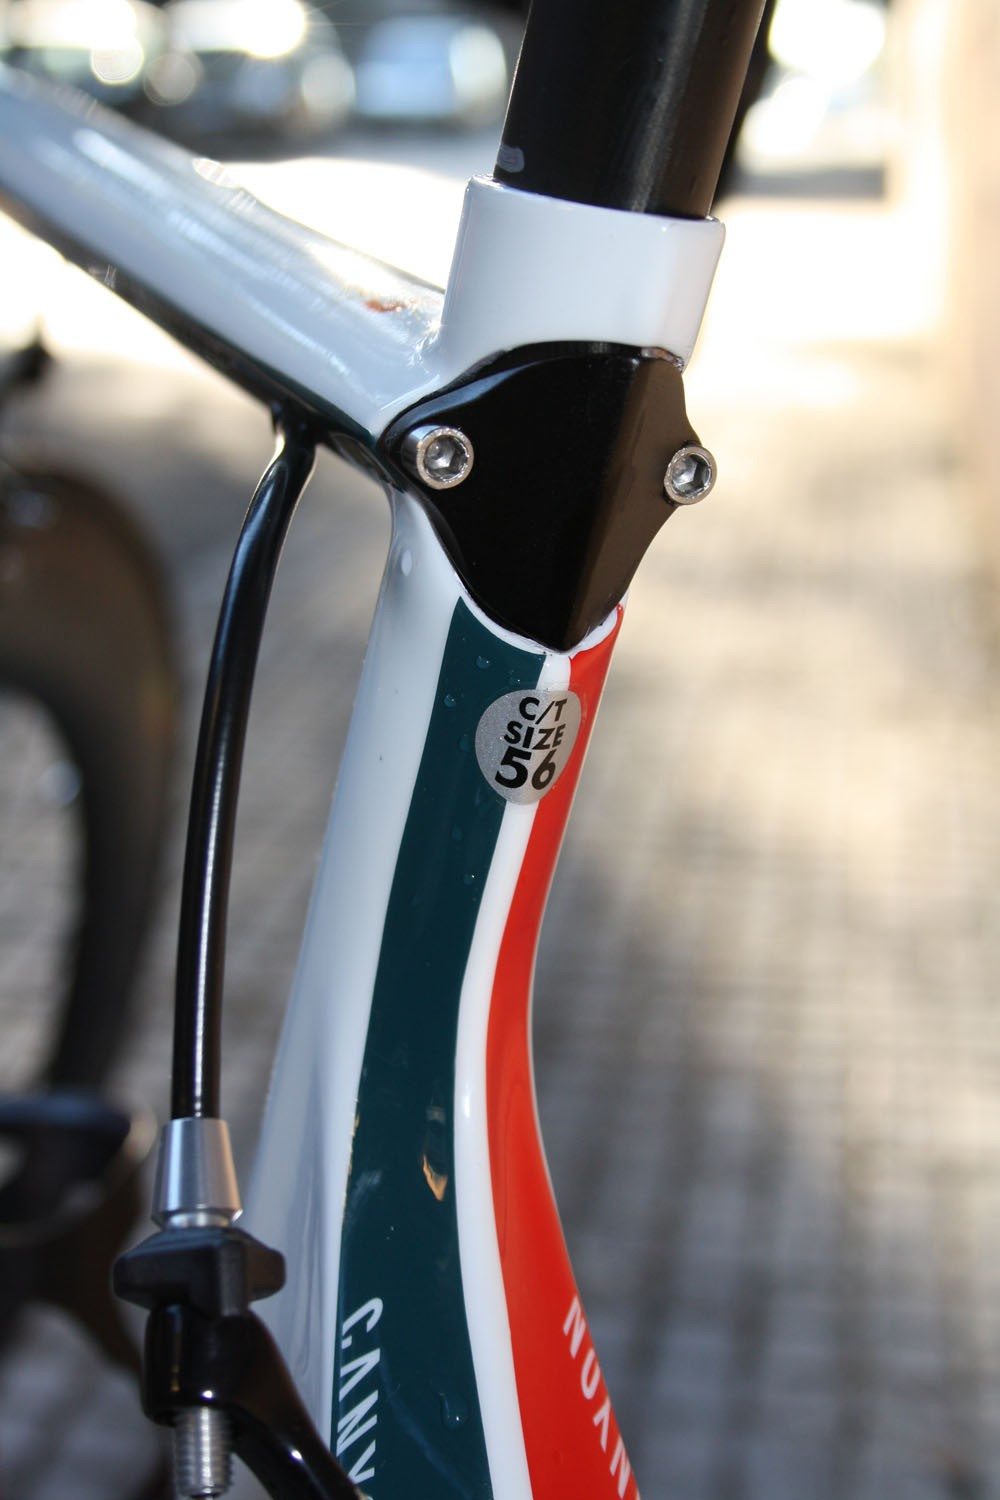 The tidy seatpost clamp is neatly integrated into the frame's sleek lines.